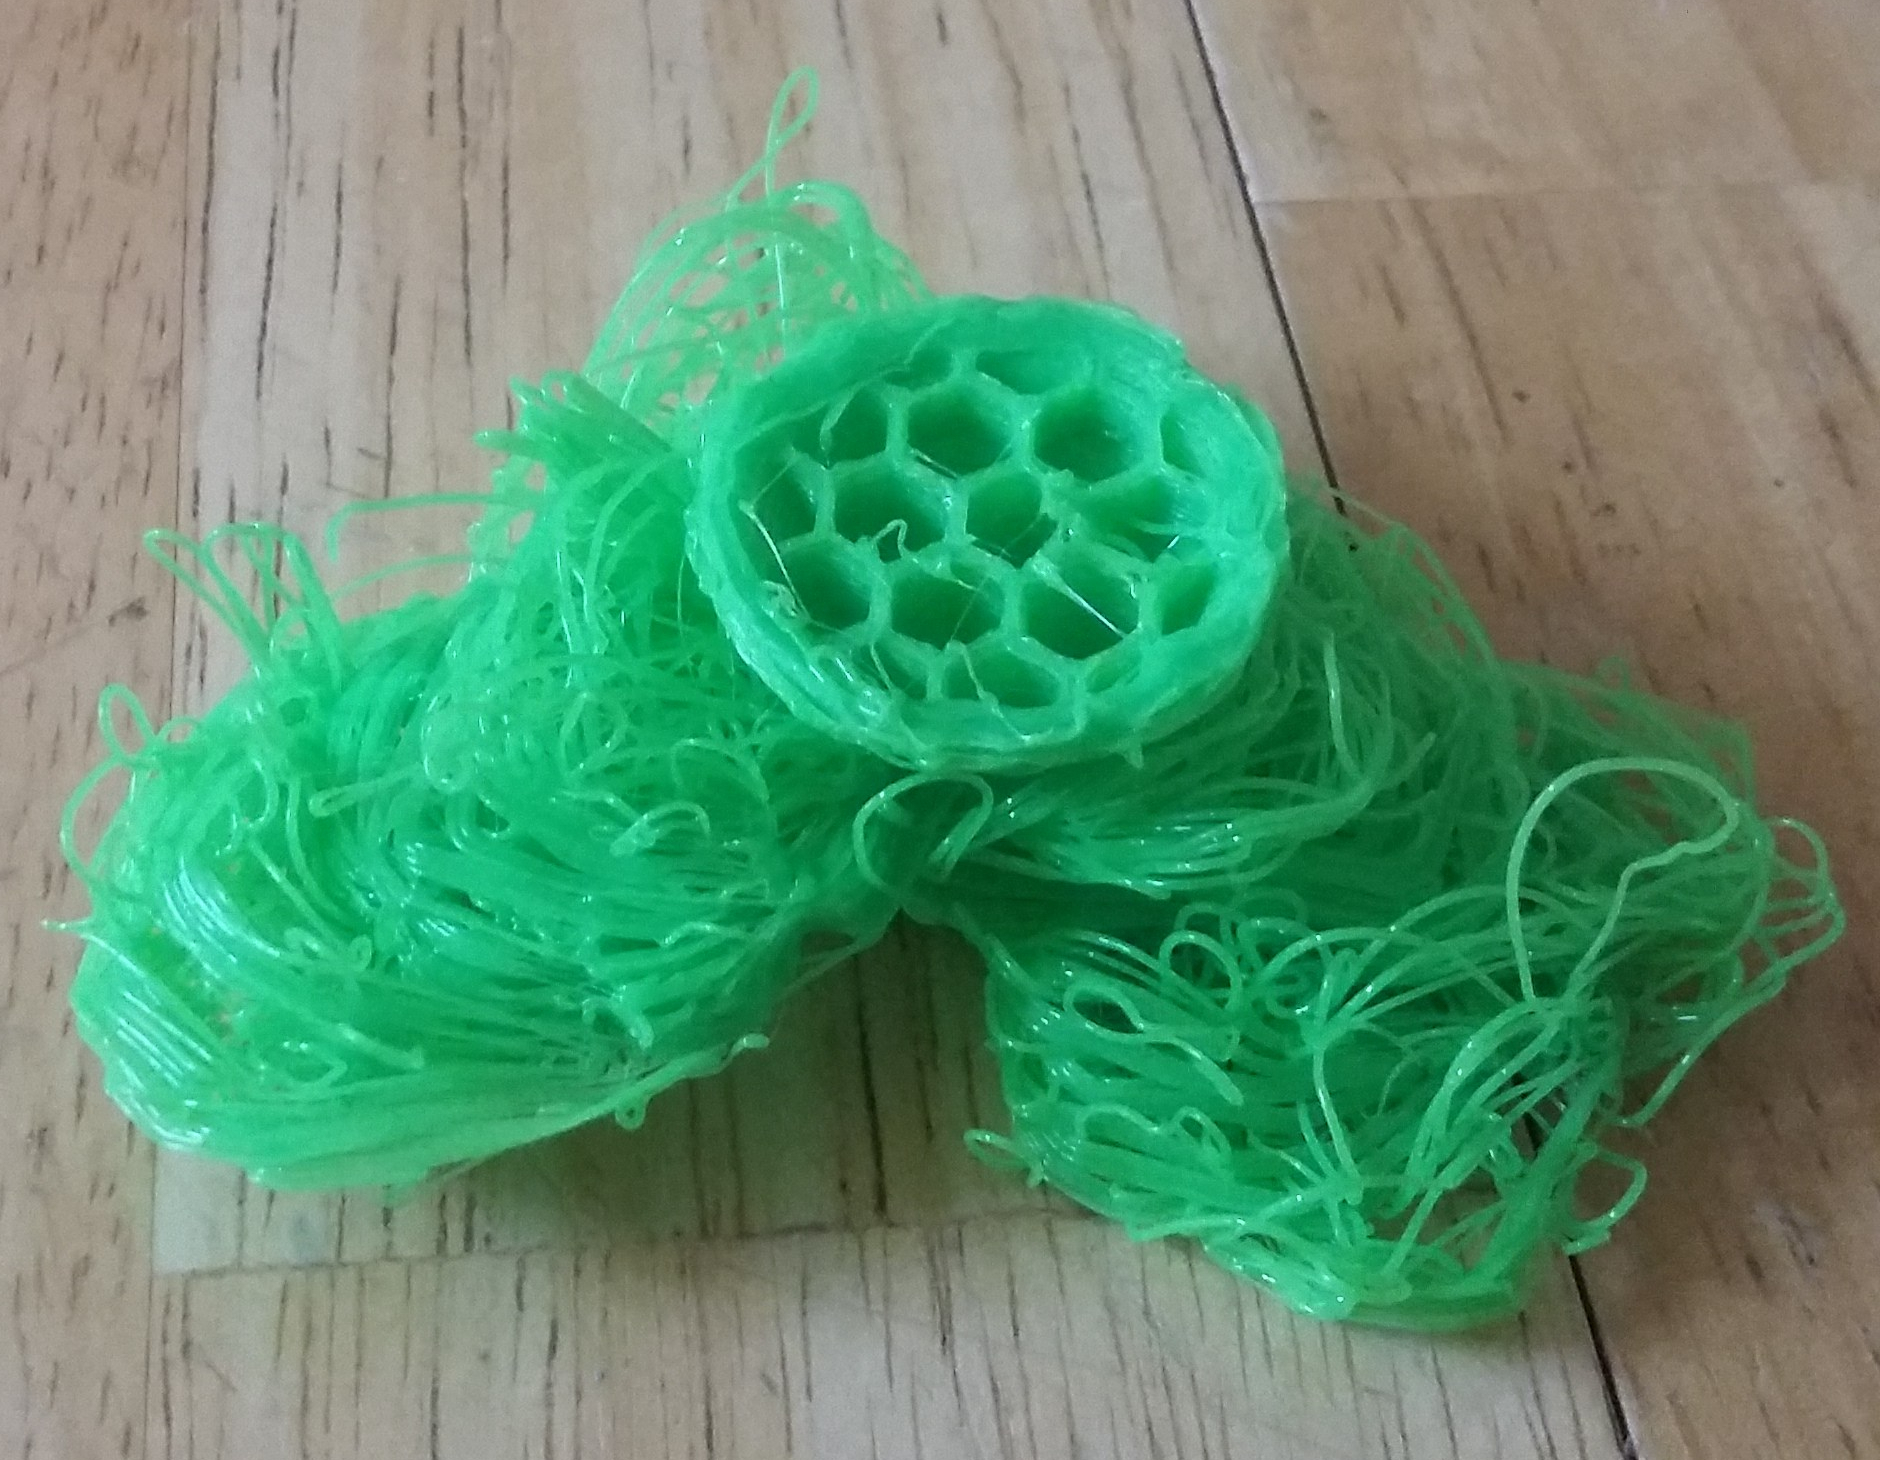 Failed cat ball toy print looks more like spaghetti...